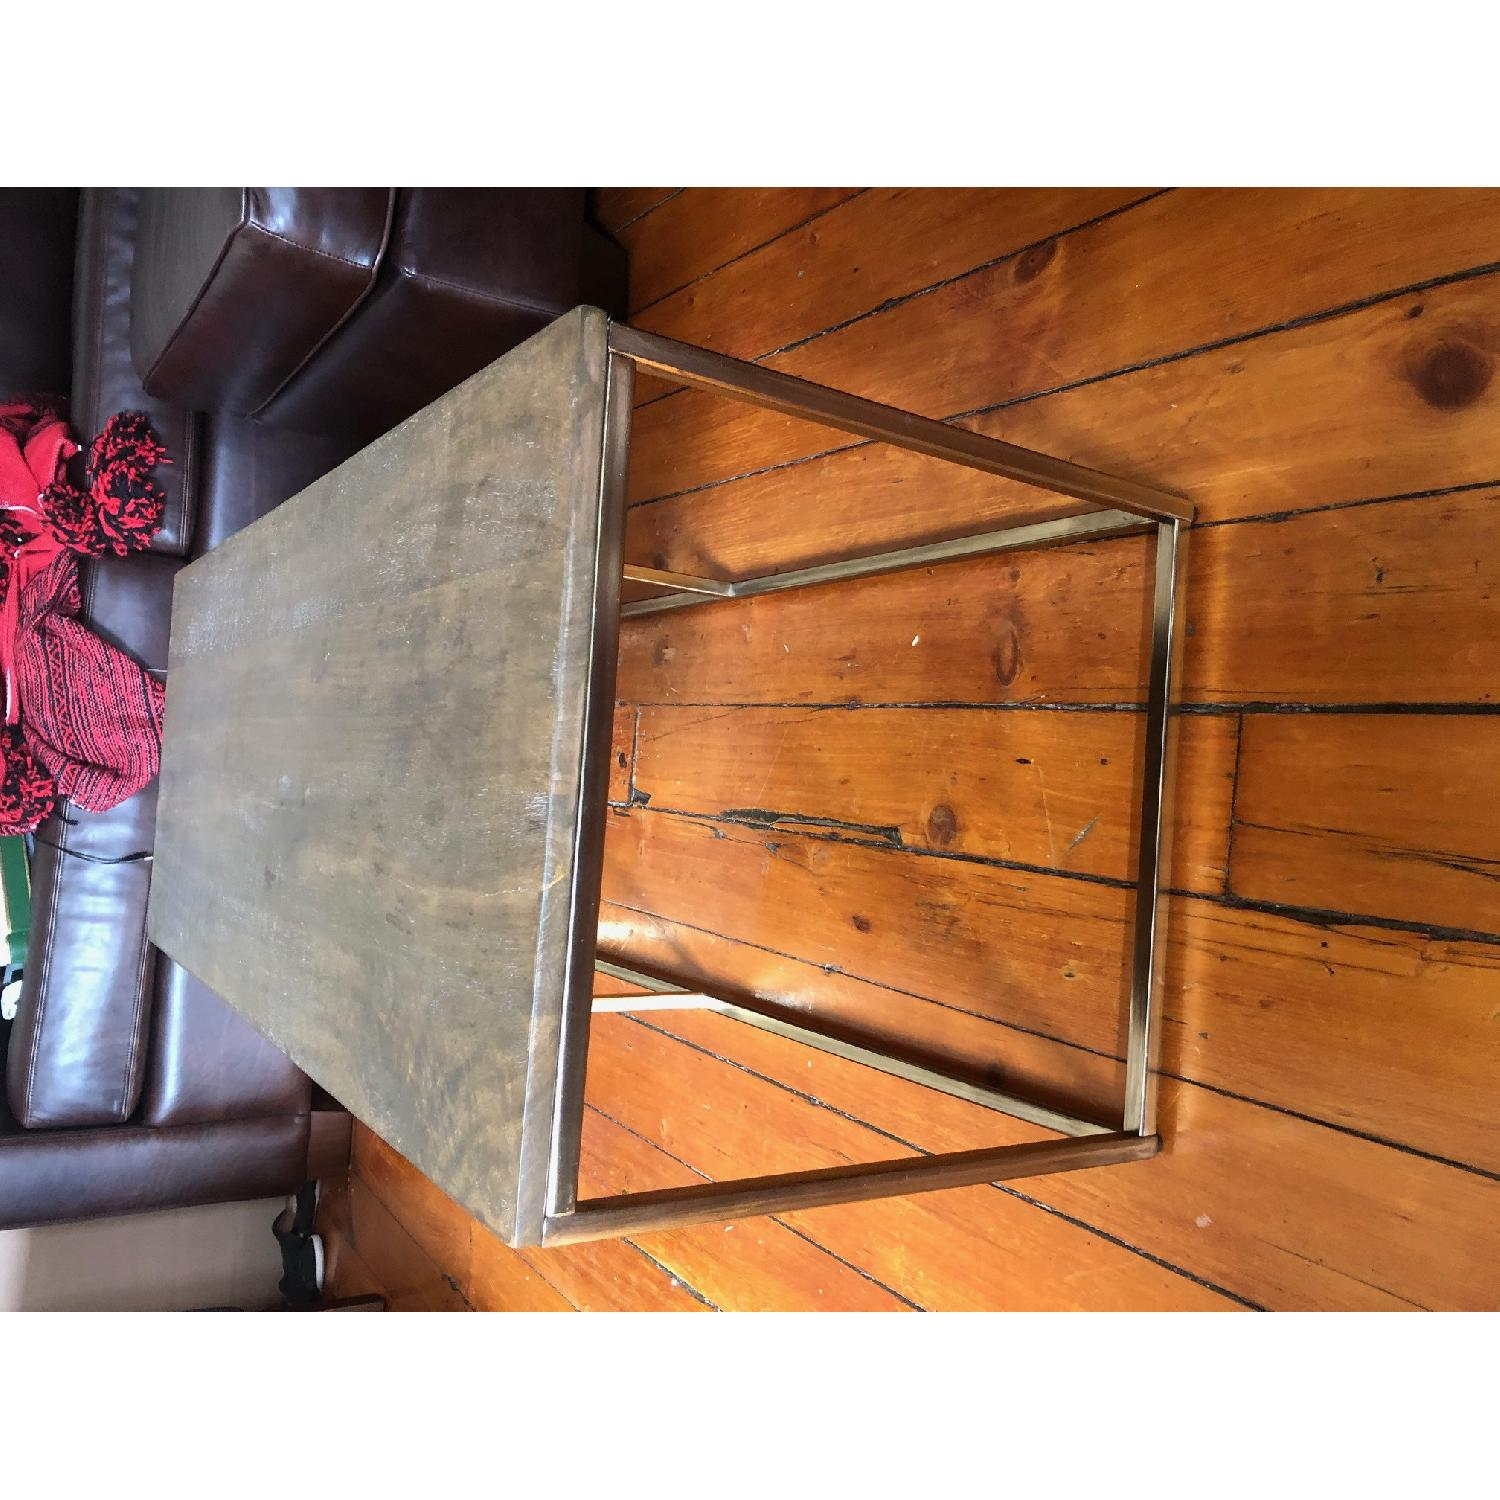 Pottery Barn Delaney Coffee Table Wood/French Grey - image-1